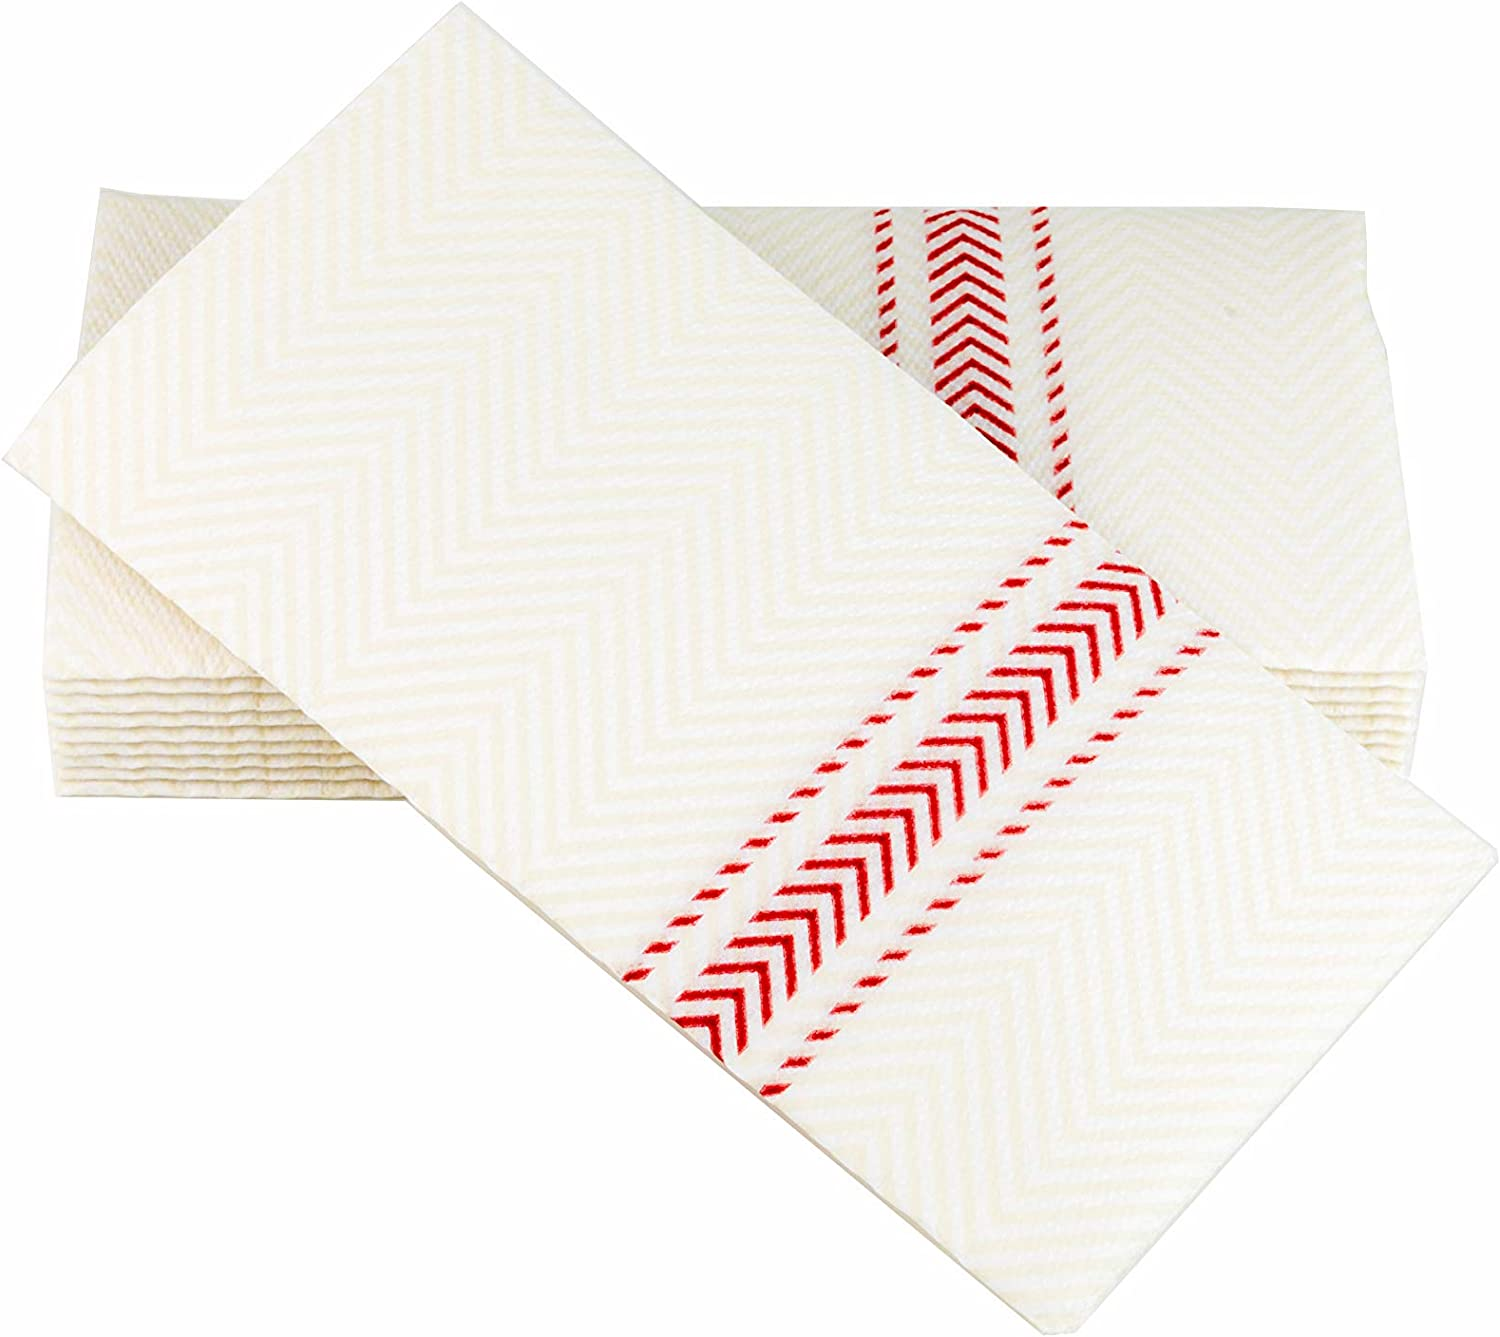 "ClassicPoint Dinner Napkins –RED Bistro Stripe – Decorative & Disposable Bistro Napkins – Soft, Absorbent & Durable (15.5""x15.5"" – Box of 50)"